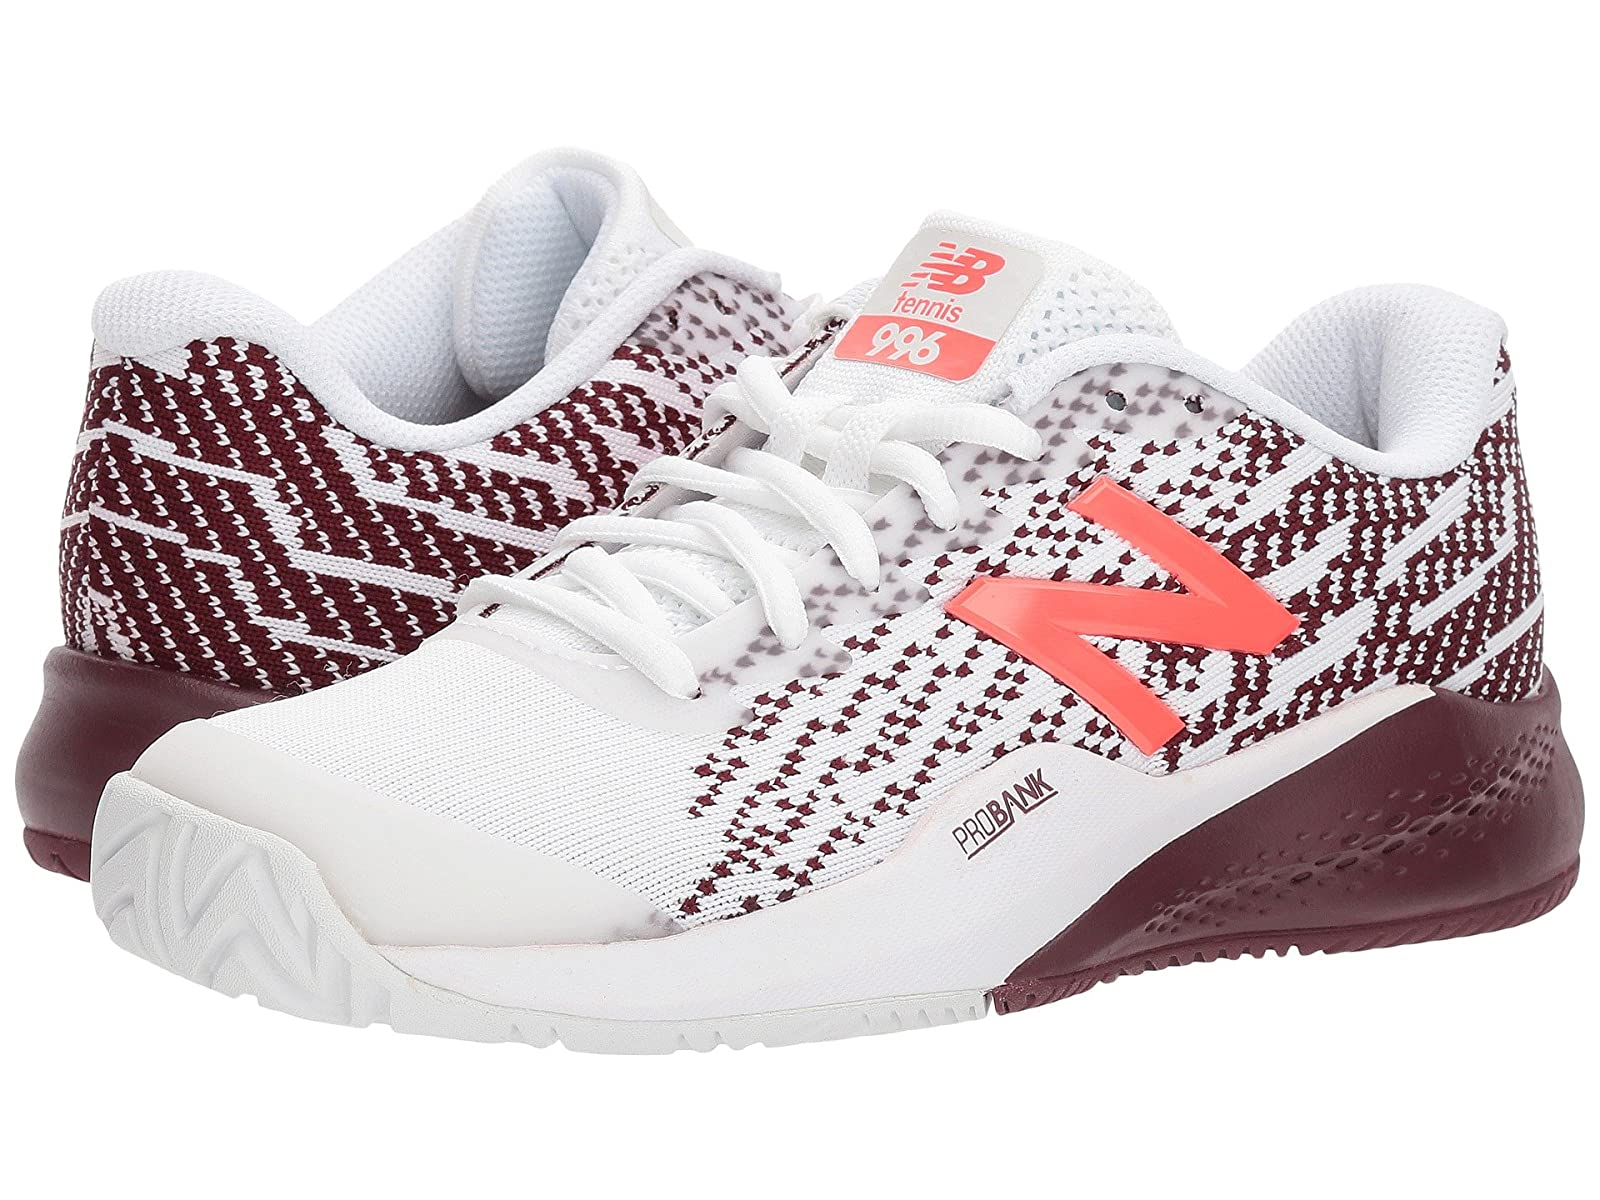 New Balance WCH996v3Cheap and distinctive eye-catching shoes